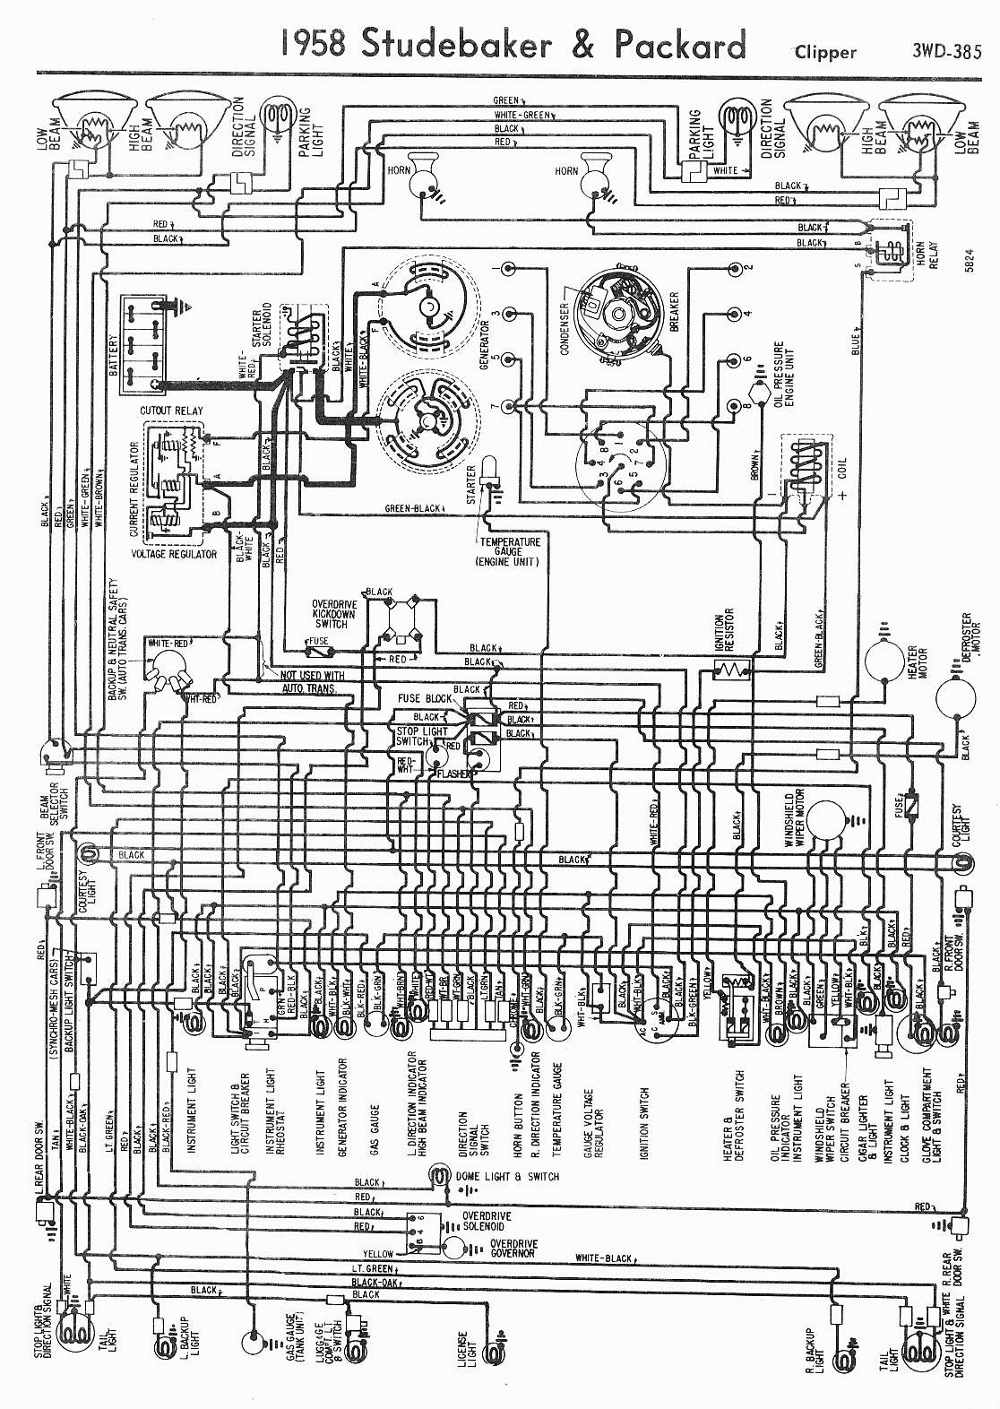 wiring diagrams 911 1958 studebaker and packard clipper wiring diagram rh  wiringdiagrams911 blogspot com 1956 packard